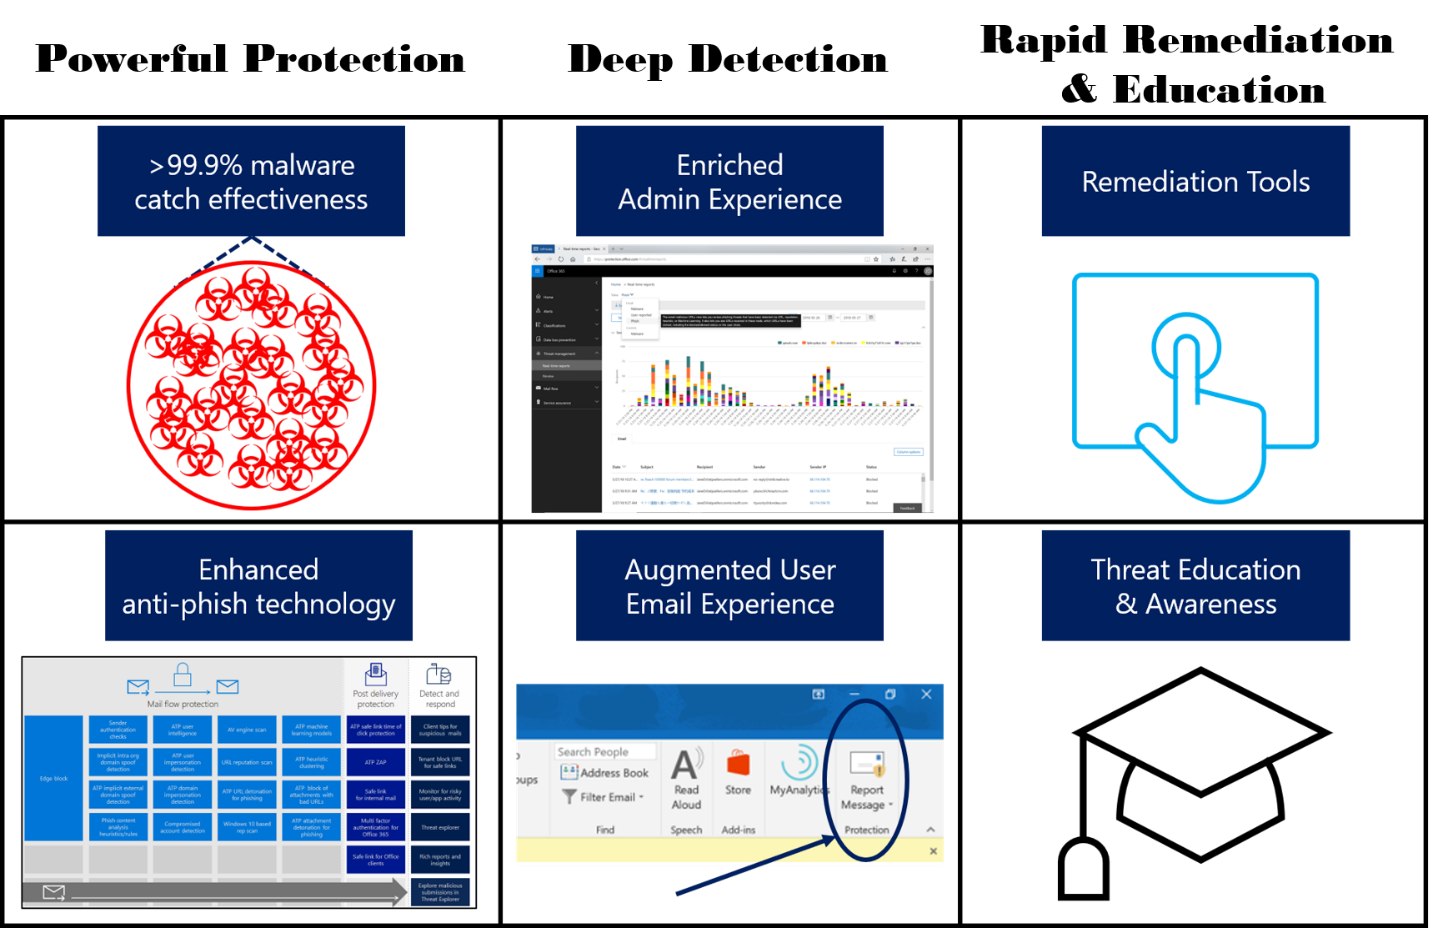 Securing the modern workplace with enhanced threat protection services in Office 365